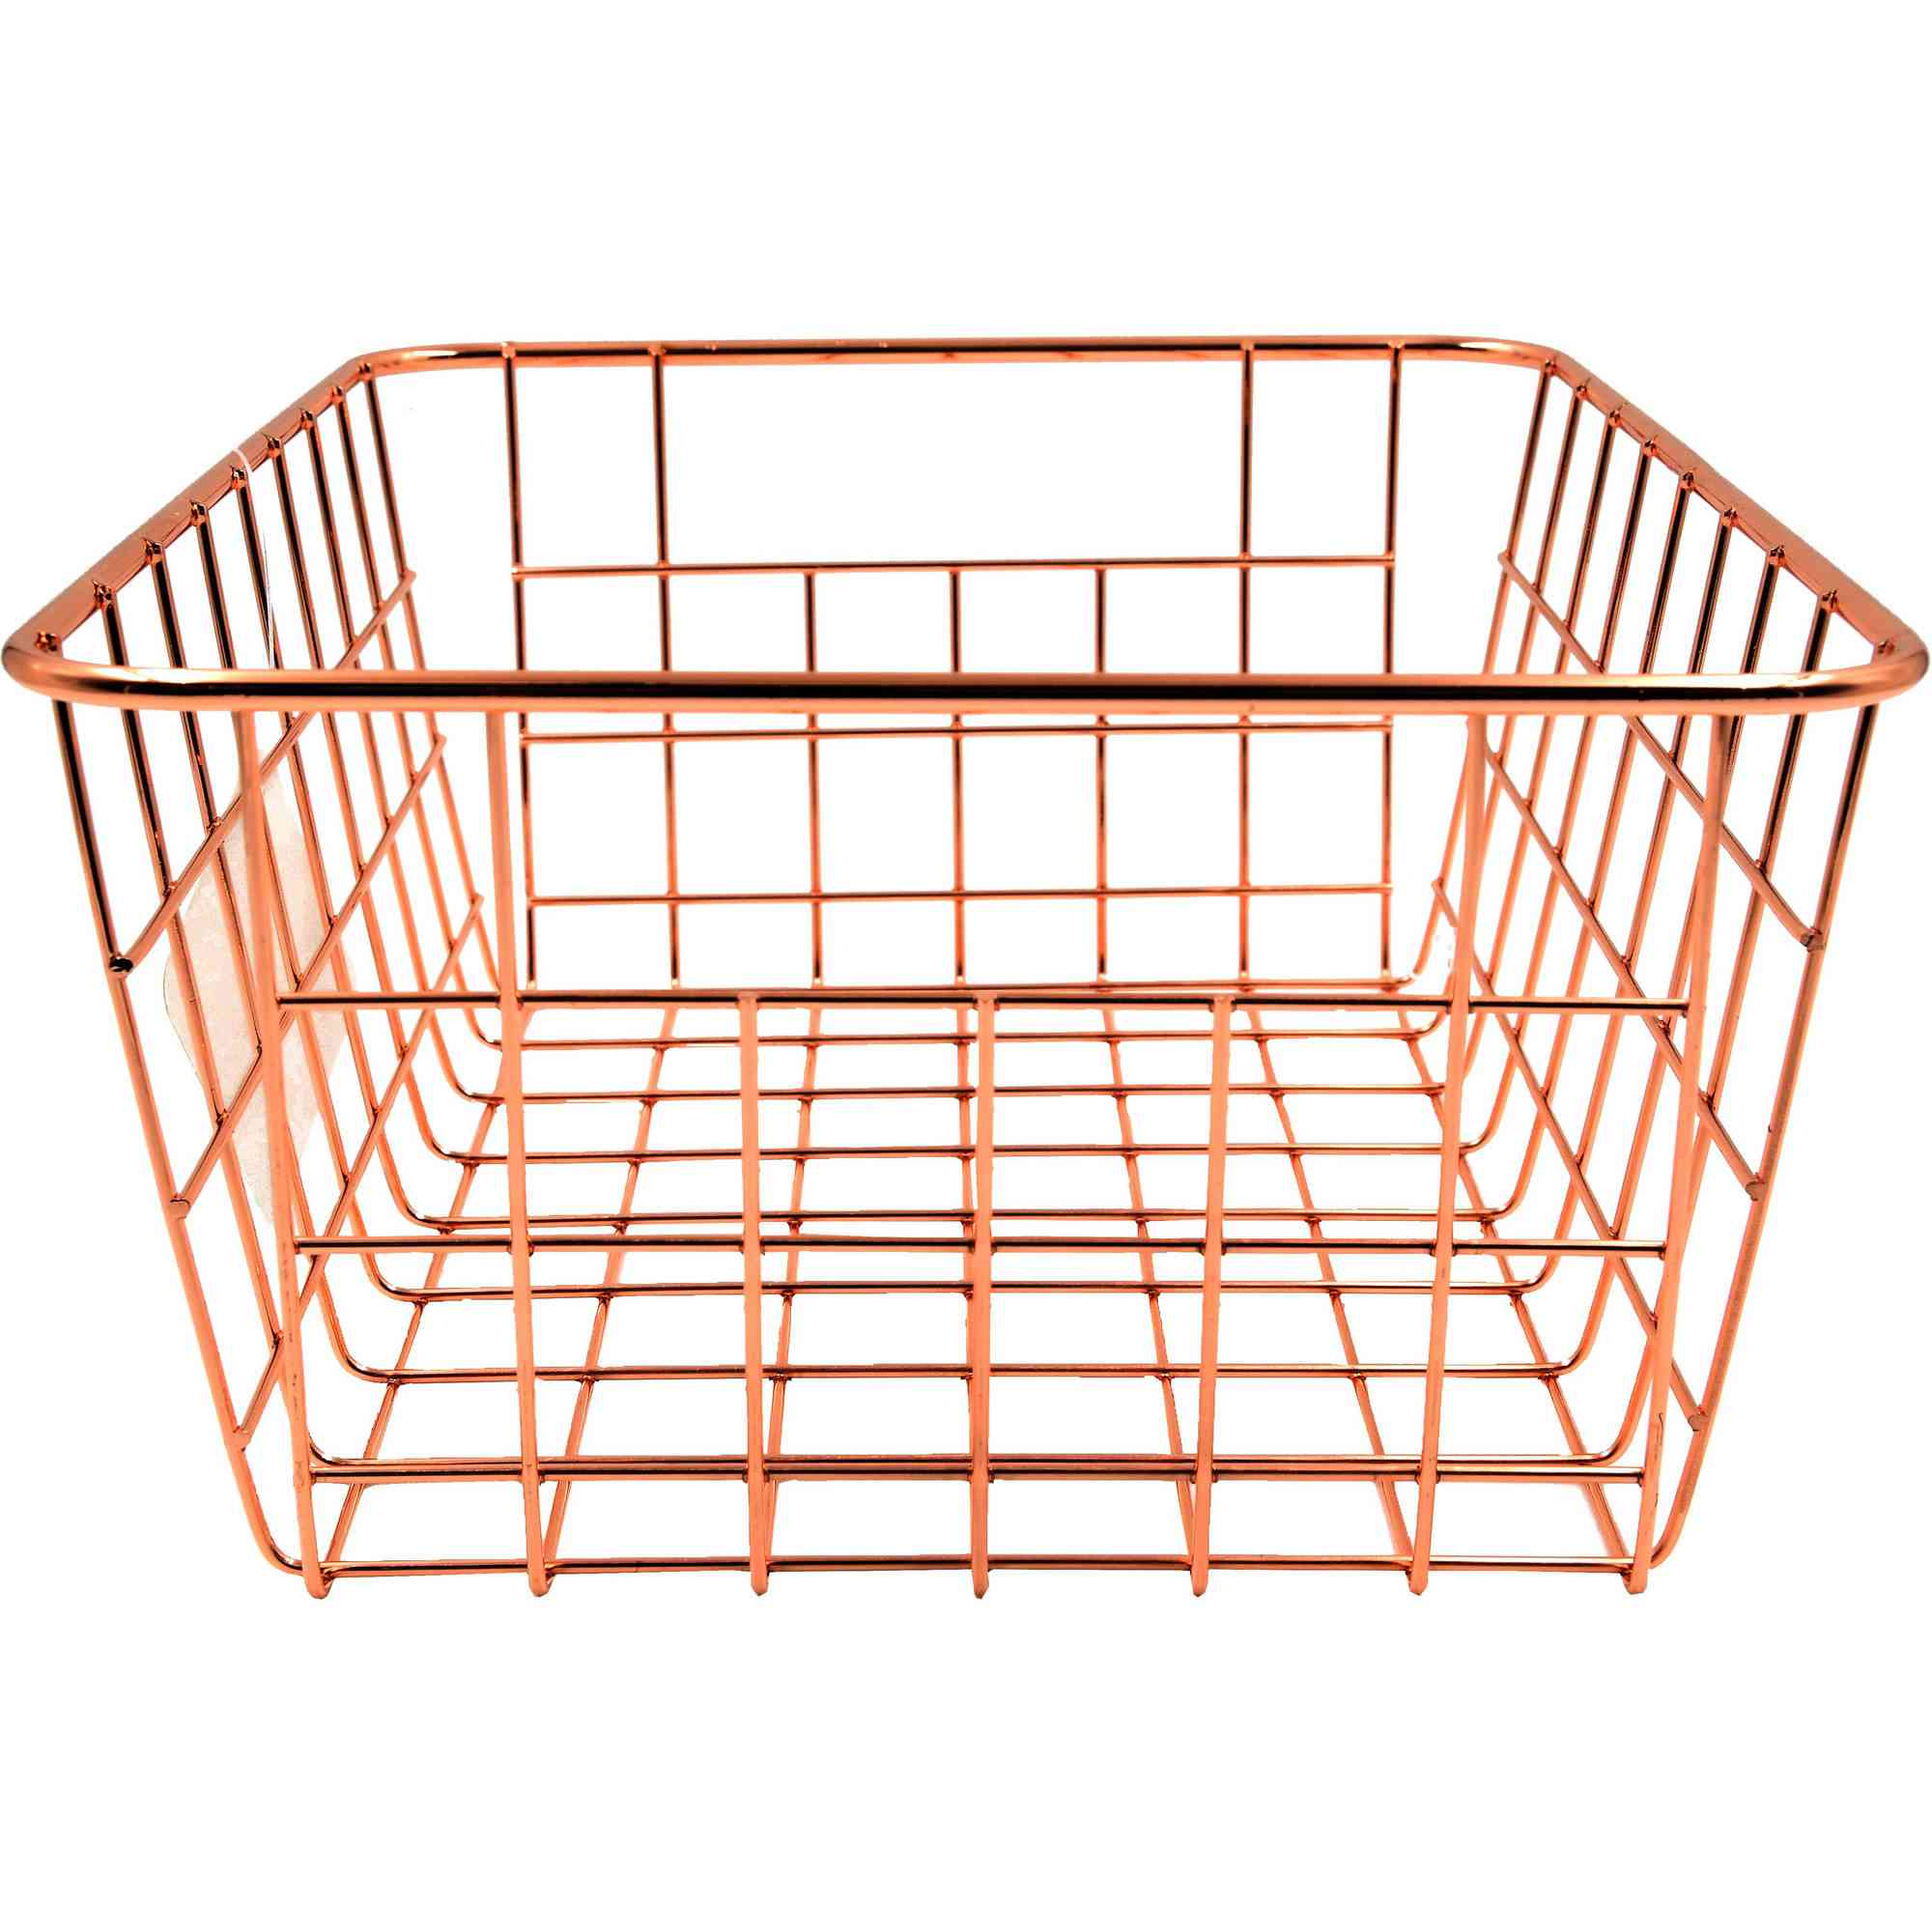 The Mainstays Carbon Steel and Rose Gold Classic Wire Basket